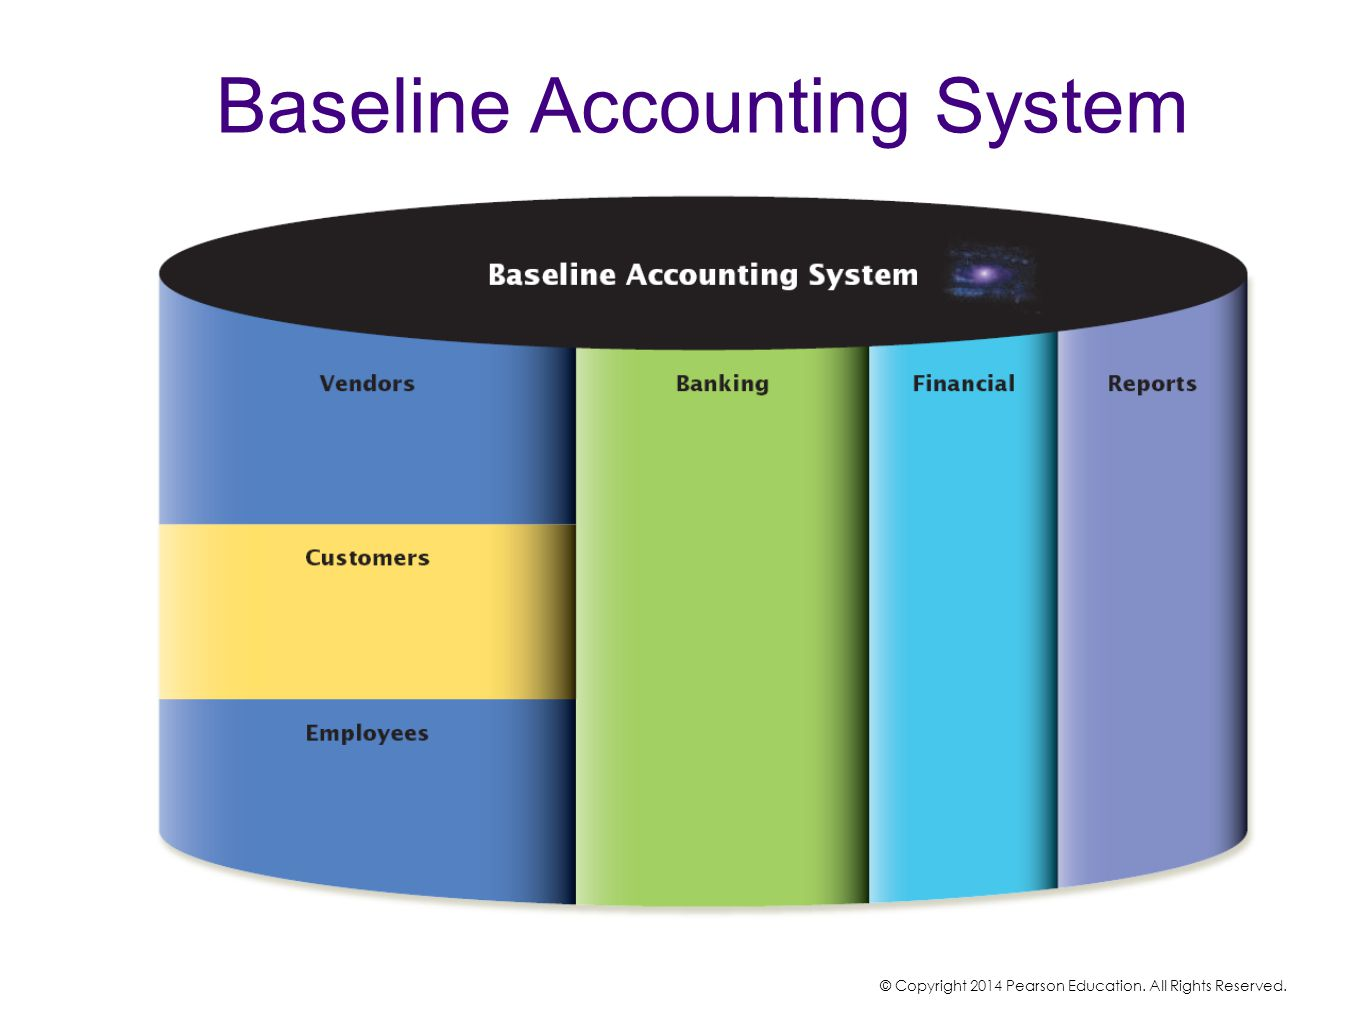 Baseline Accounting System